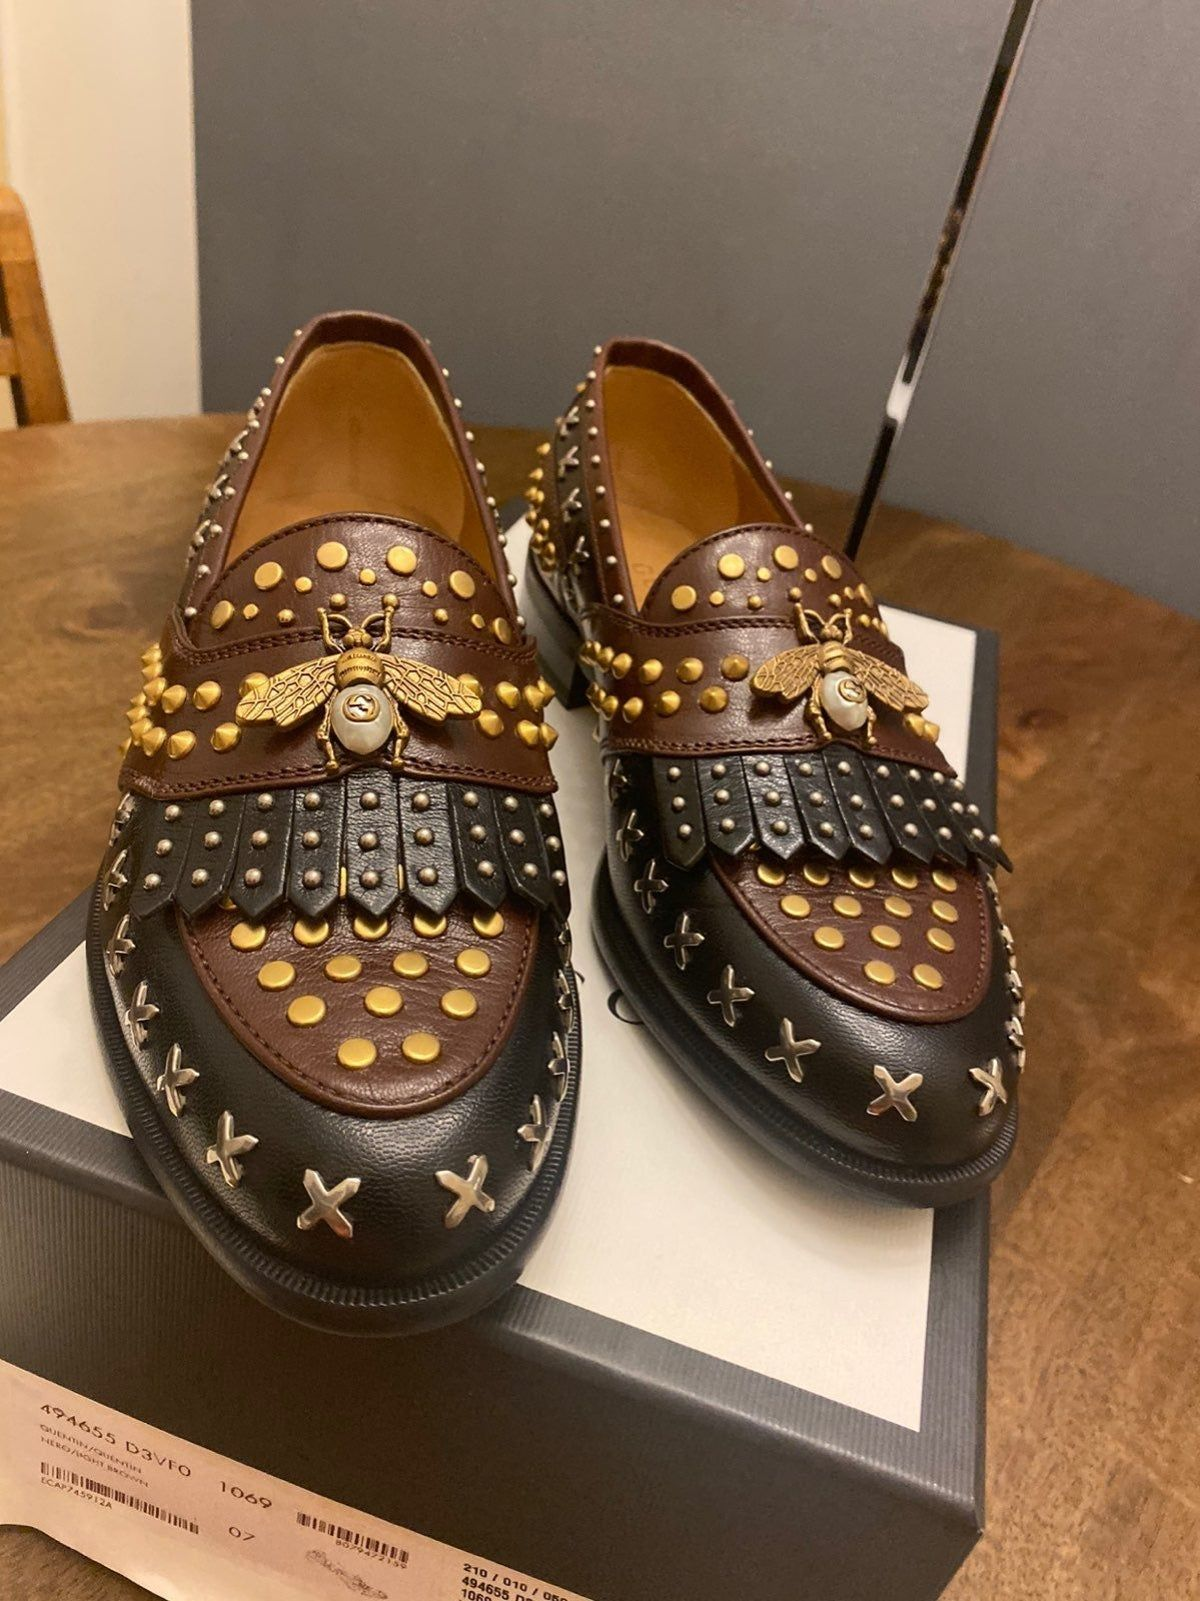 Gucci studded rivet loafers in 2020